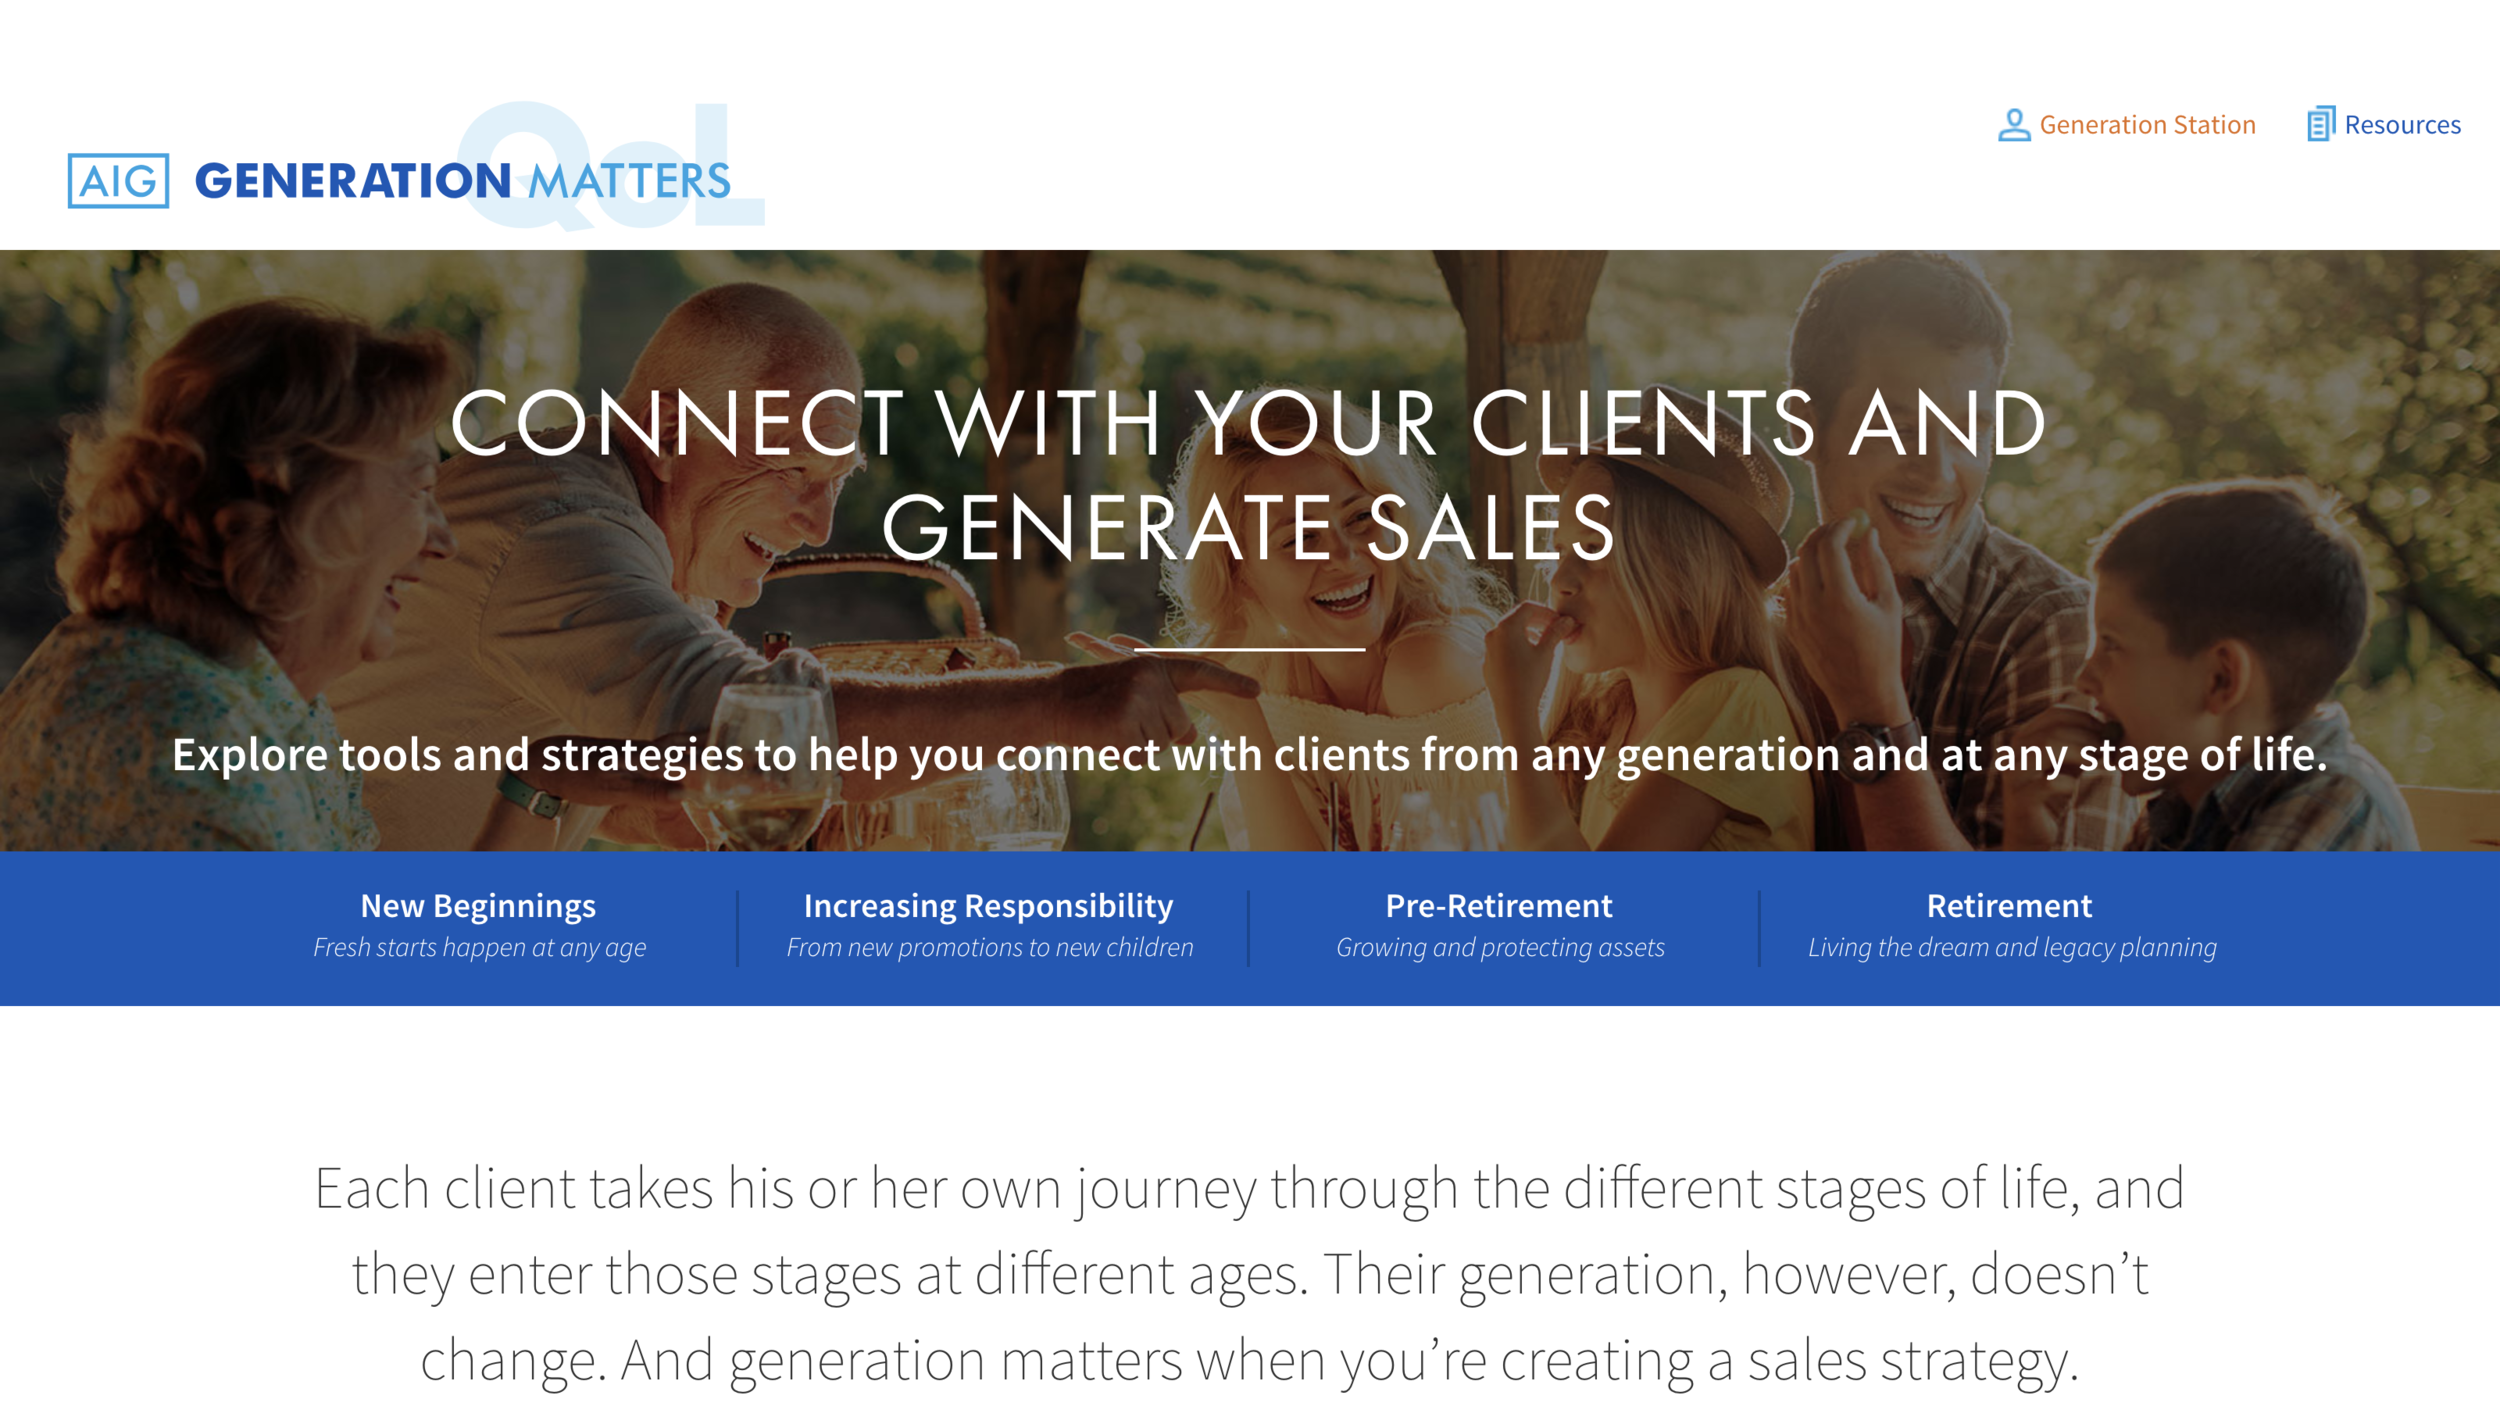 Generation Matters - Connect with clients and prospects of any age, any phase of life. Tips, strategies and materials to help you be generationally correct.